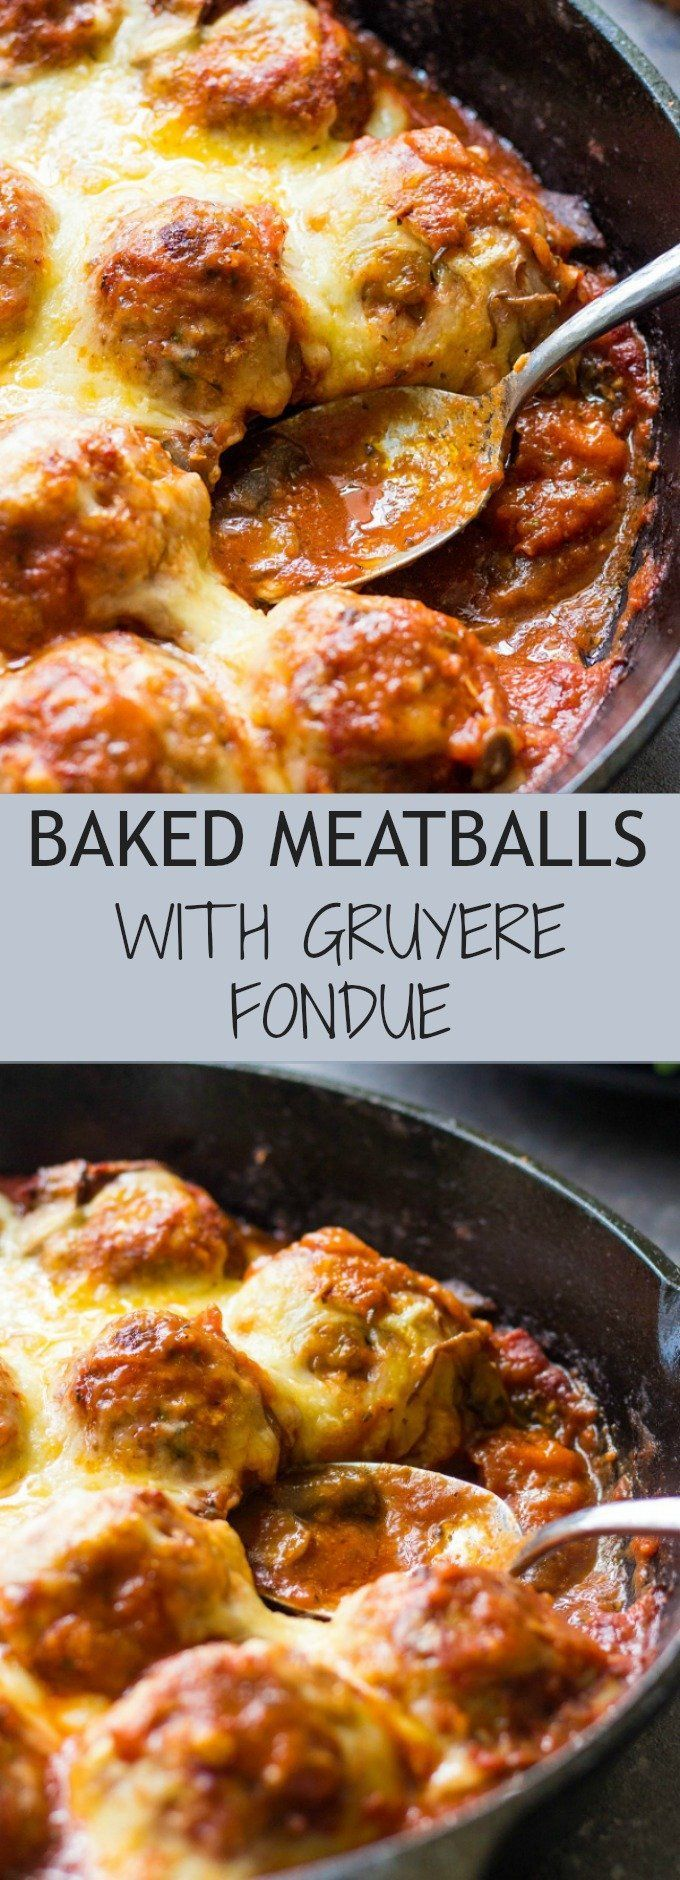 Baked Meatballs with Mushrooms and Gruyere Fondue